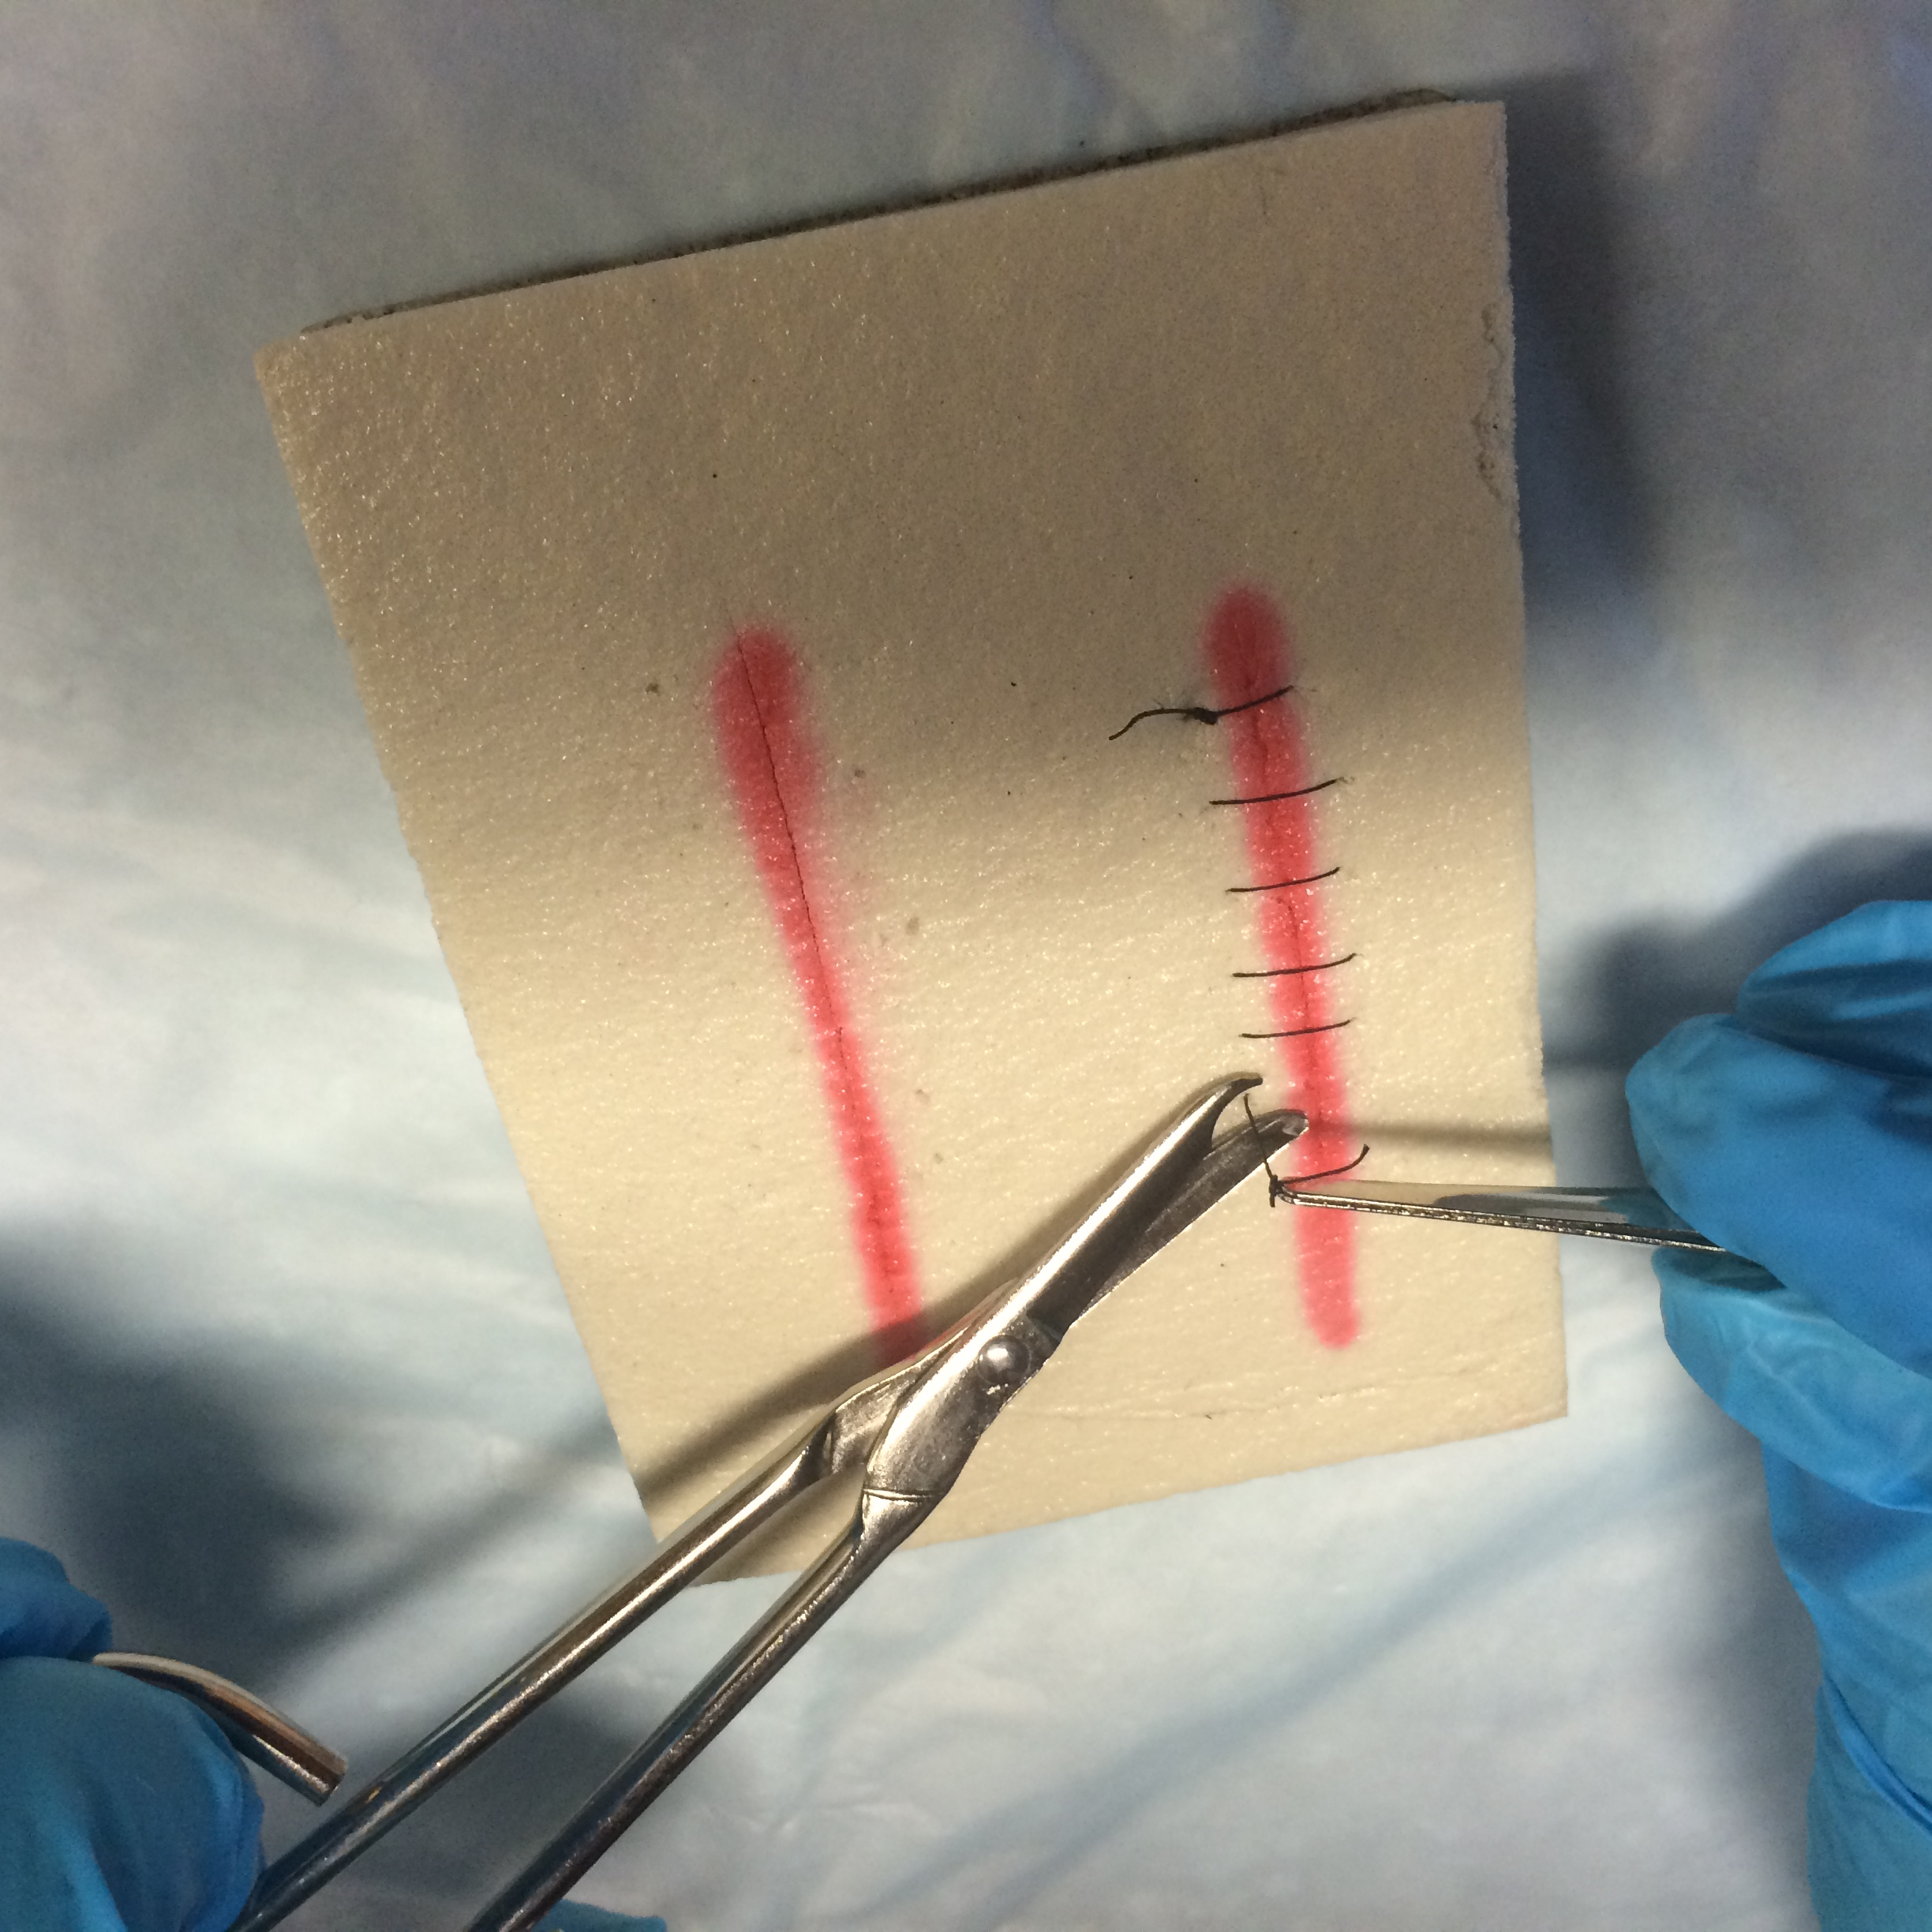 4 4 suture removal clinical procedures for safer patient care